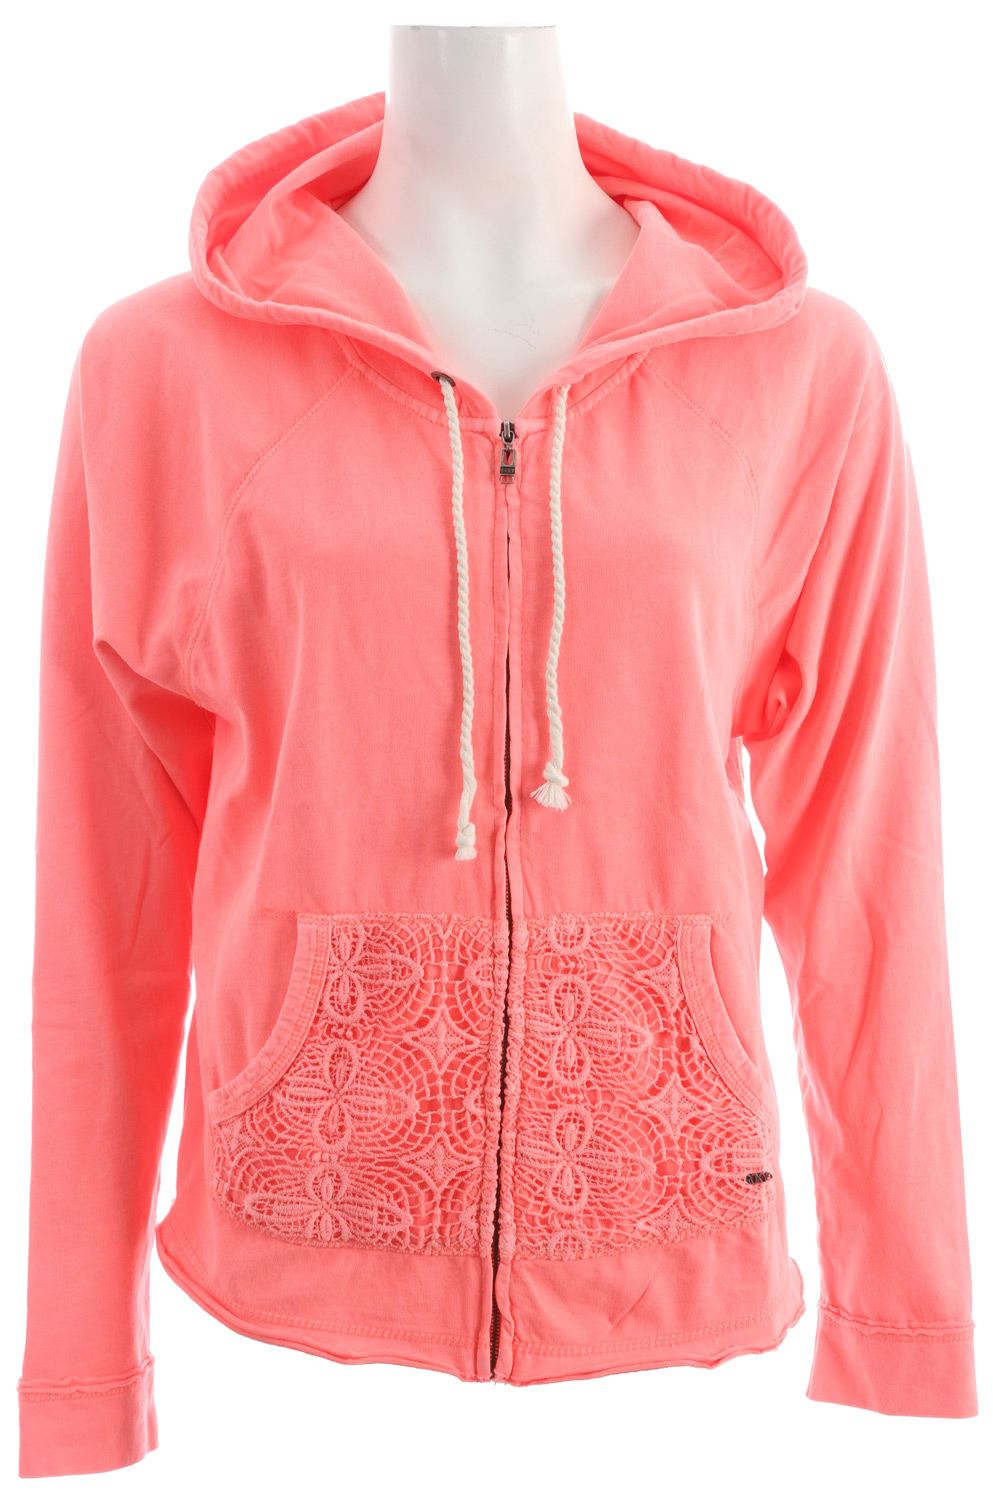 Surf If you want to know what makes the Neon Tide zip-up shine so bright, just have a look at its hood. You'll see sweet crochet trim working its magic to make this sweatshirt extra girlie. Includes a deep kanga pocket at front. 24-inch length. 100% cotton jersey fleece. Imported. Machine wash. - $36.95